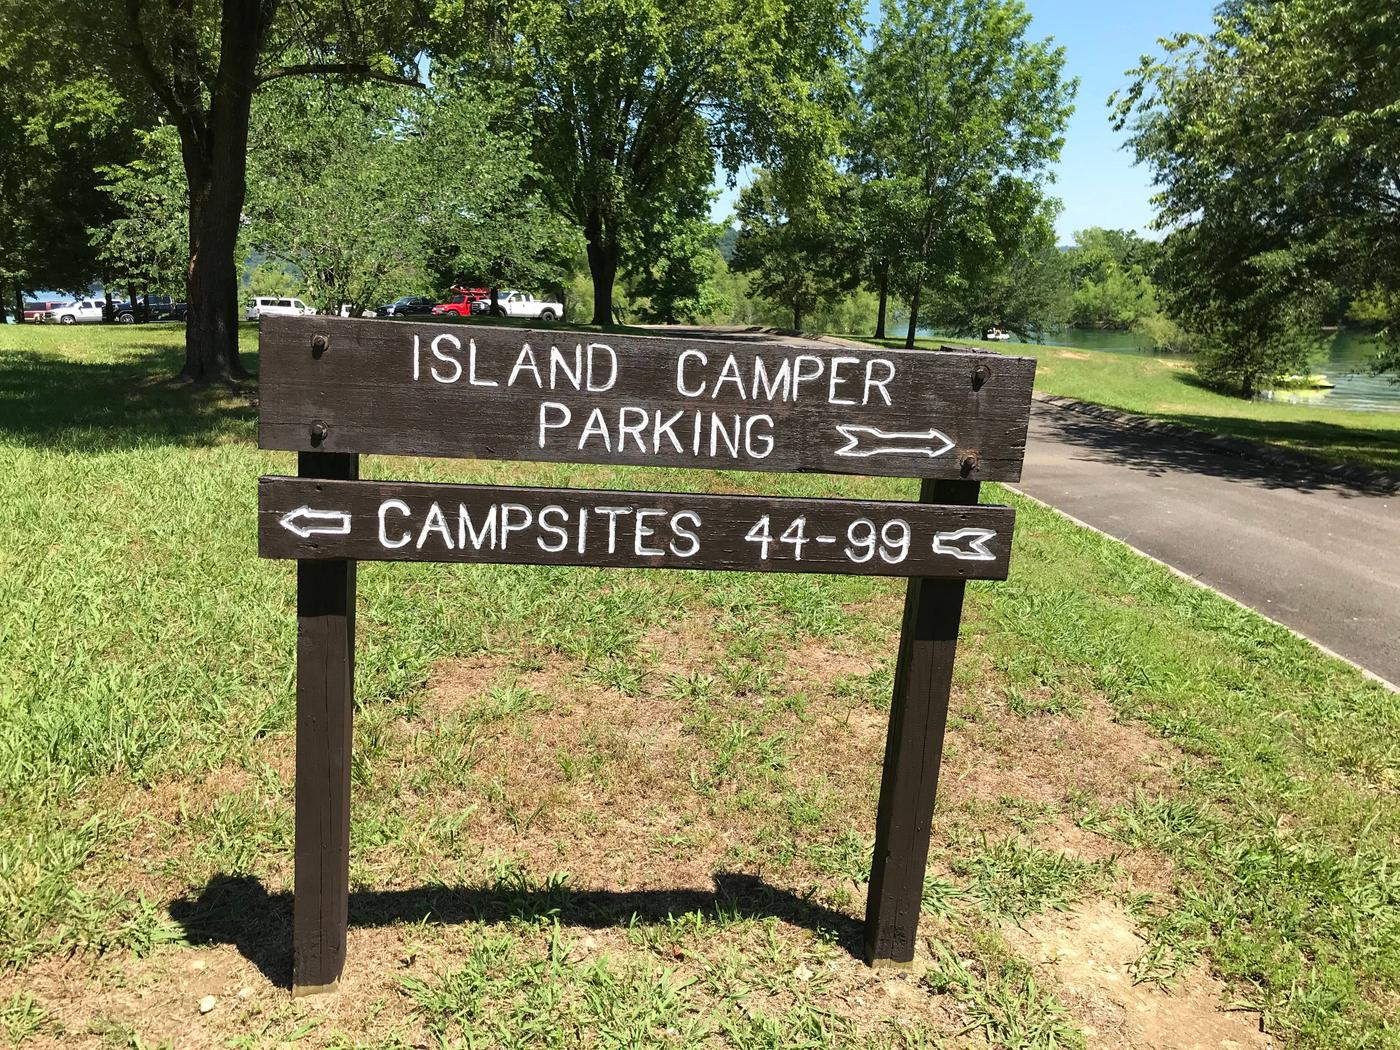 LILLYDALE CAMPGROUND SITE #105 ISLAND CAMPER DIRECTIONAL SIGN